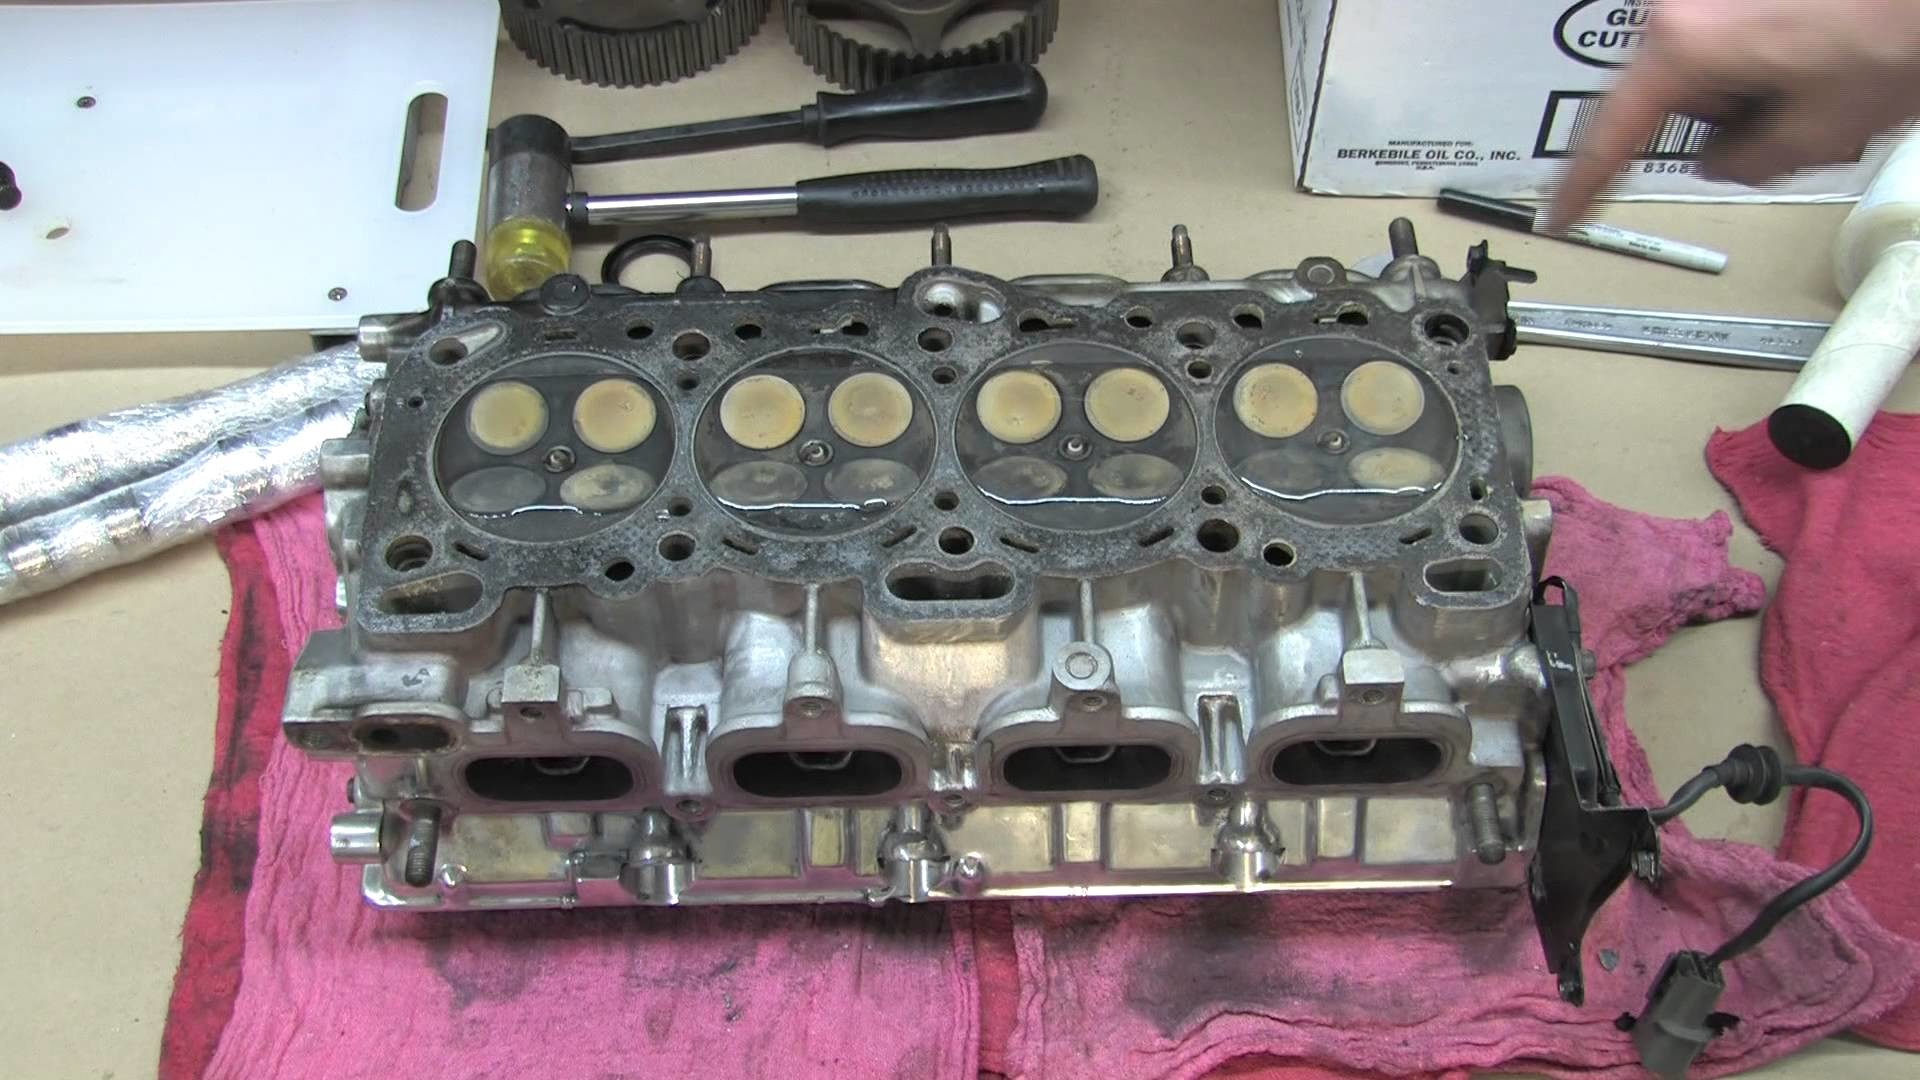 Cylinder Head 102 - Hydro Test Valves